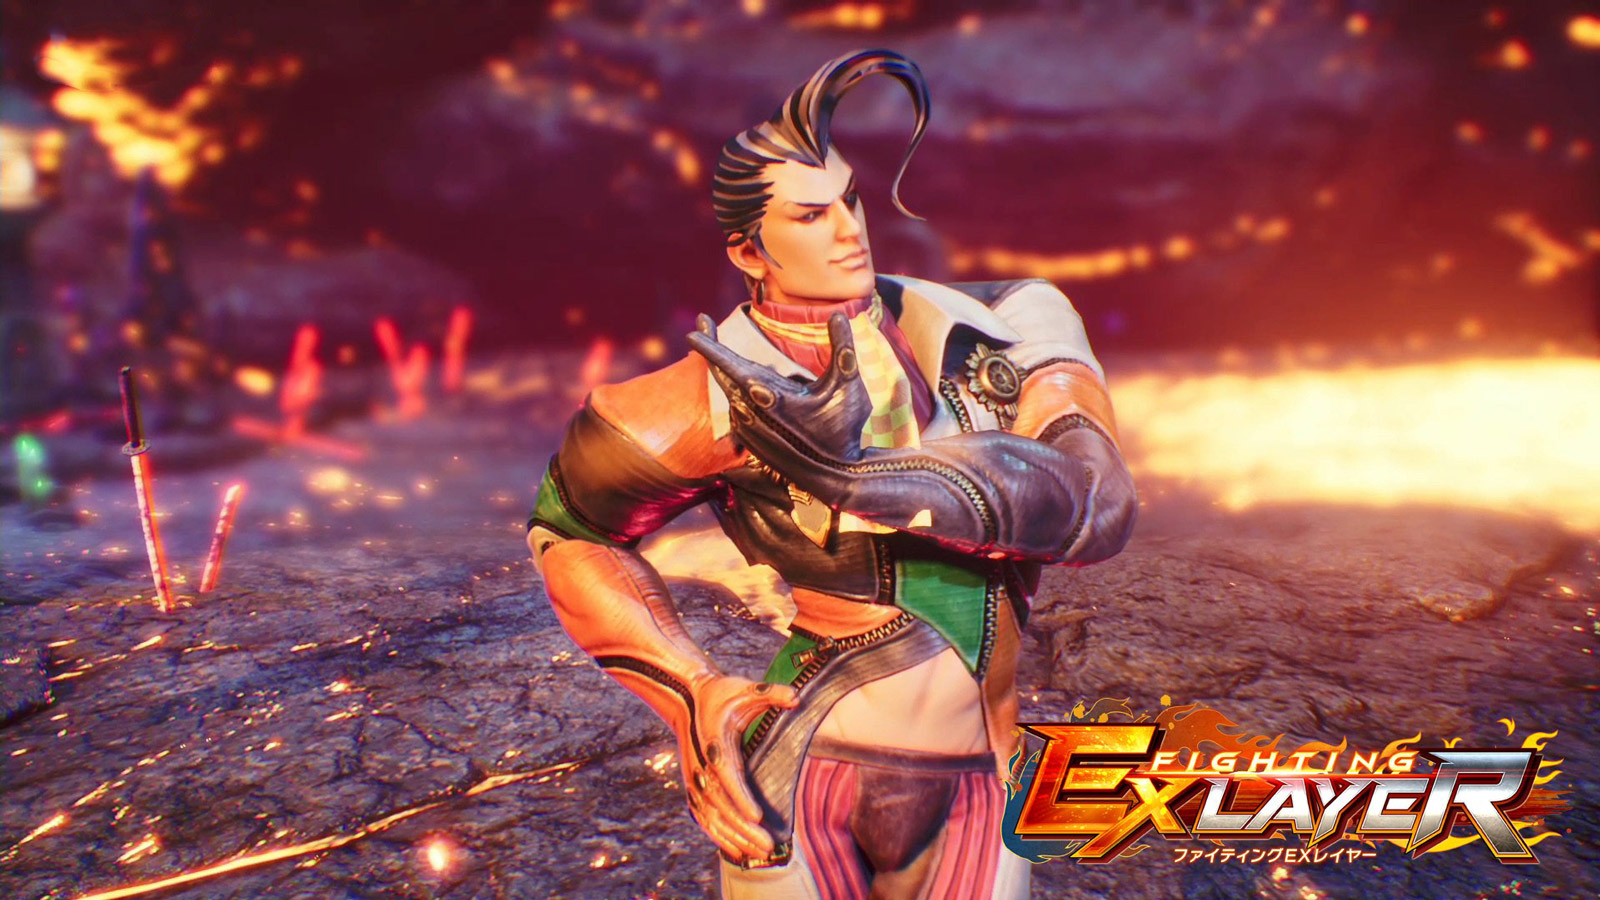 Free Fighting EX Layer Wallpaper in 1600x900